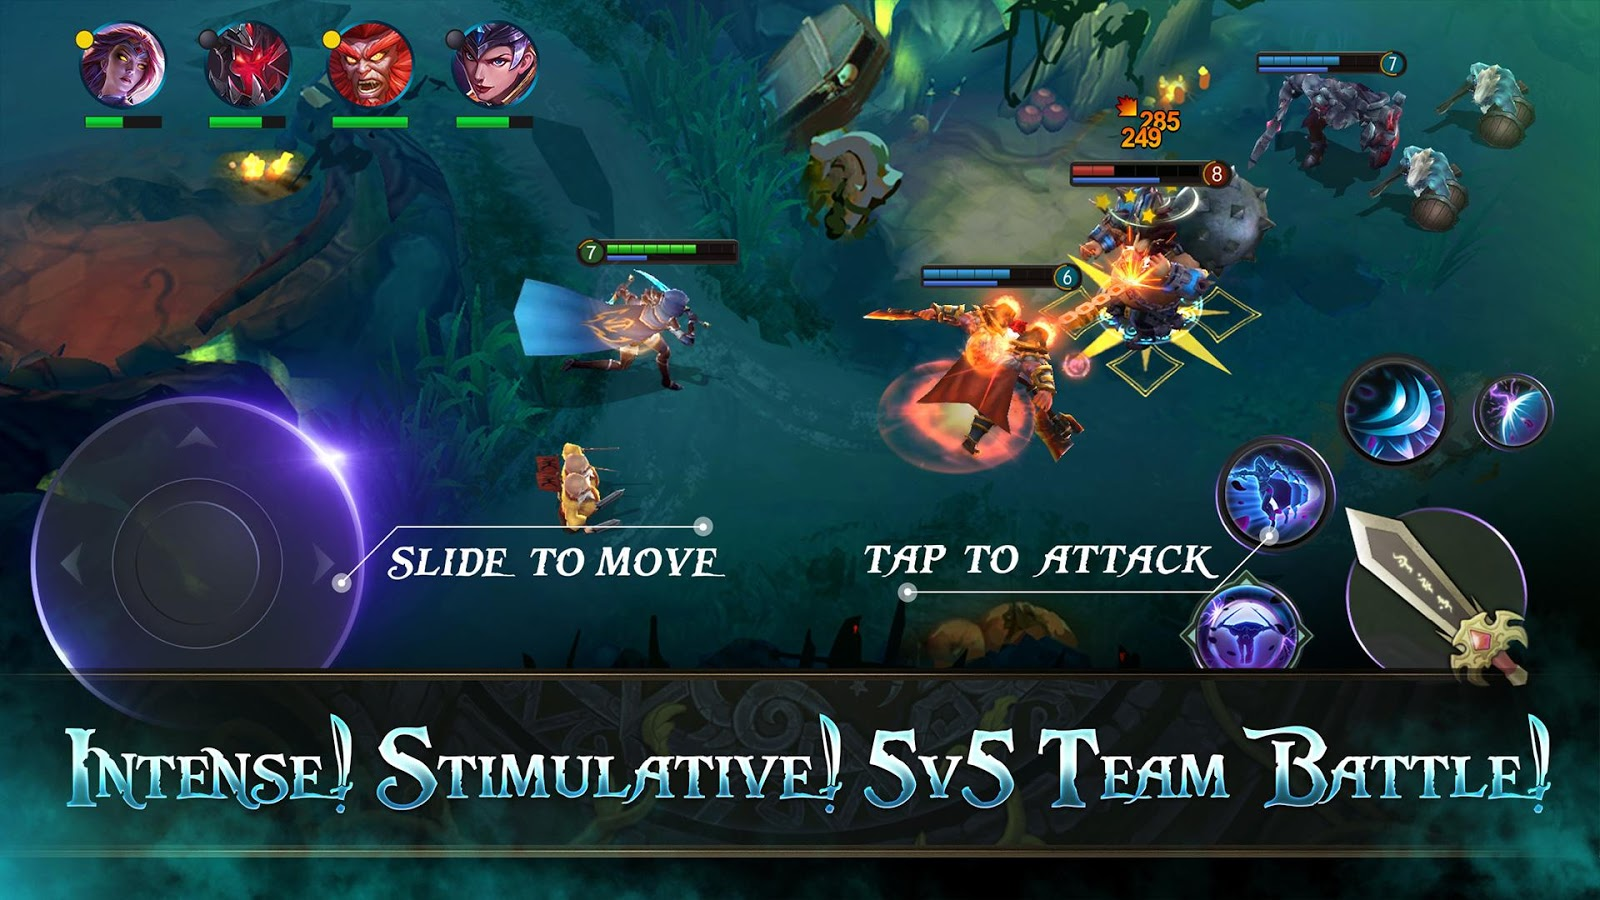 Battle for Glory MOBA